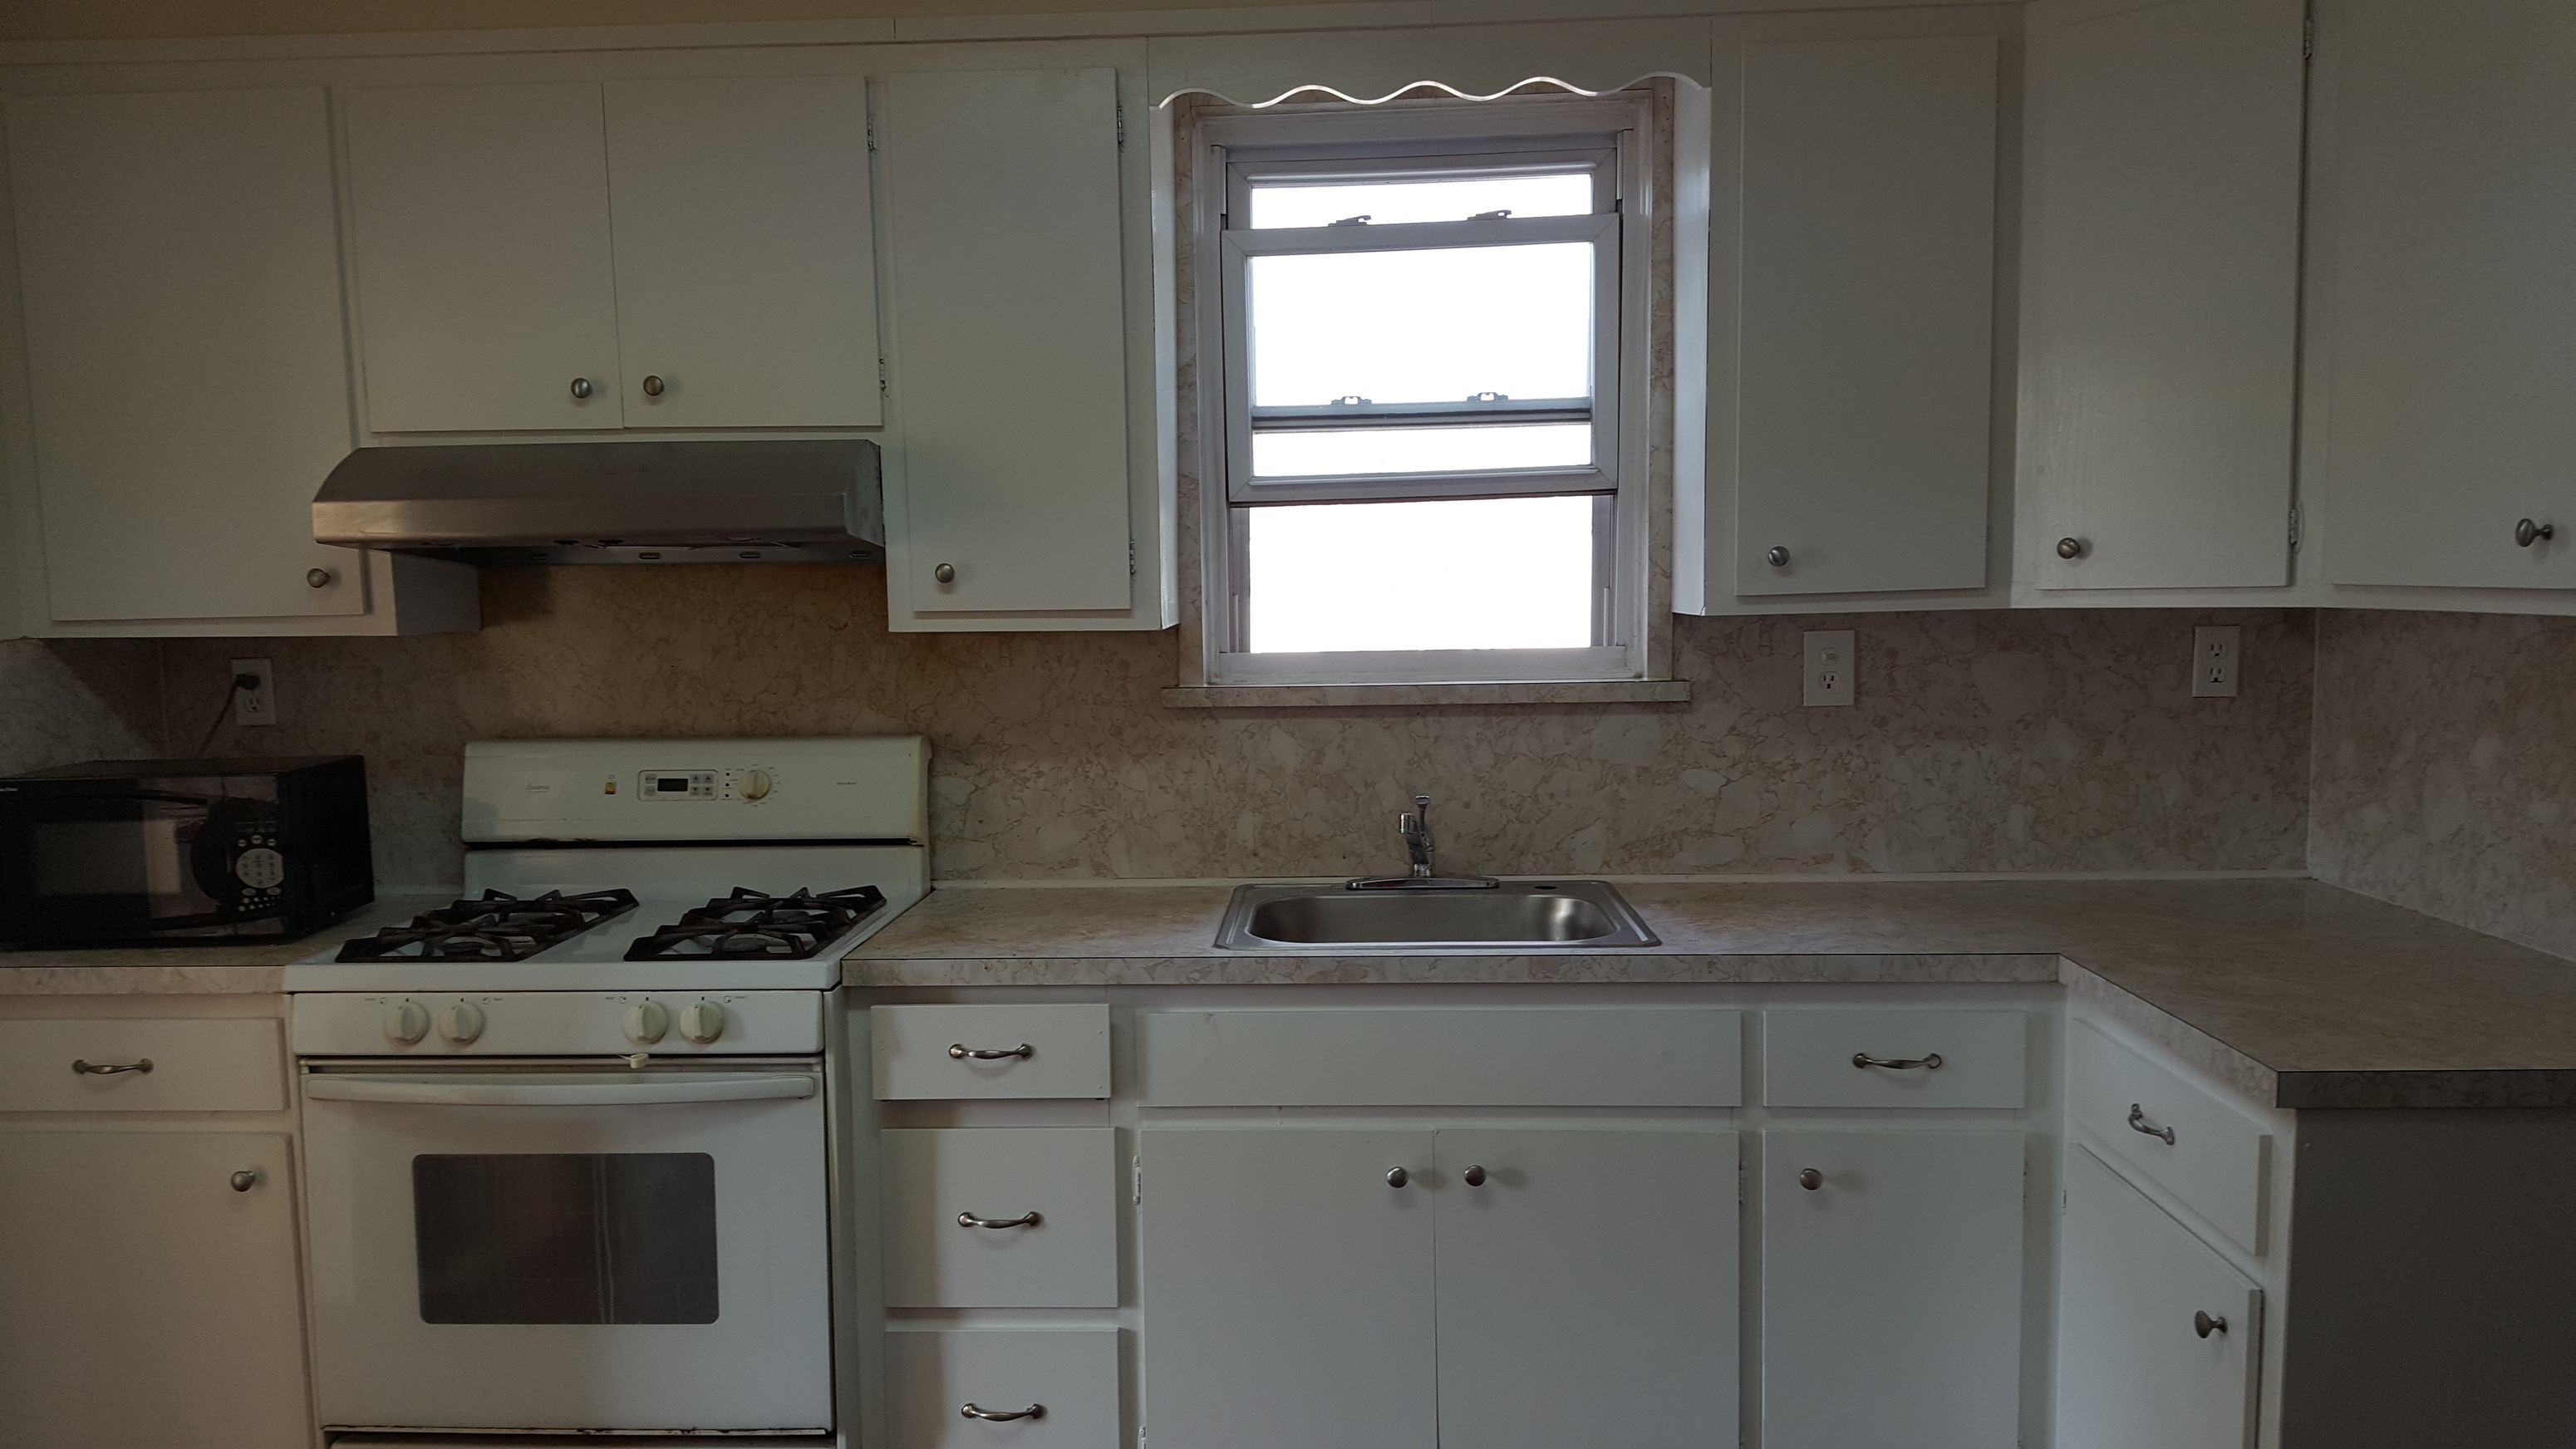 Rooms For Rent Jersey City NJ Apartments House Commercial - 2 bedroom apartments in jersey city